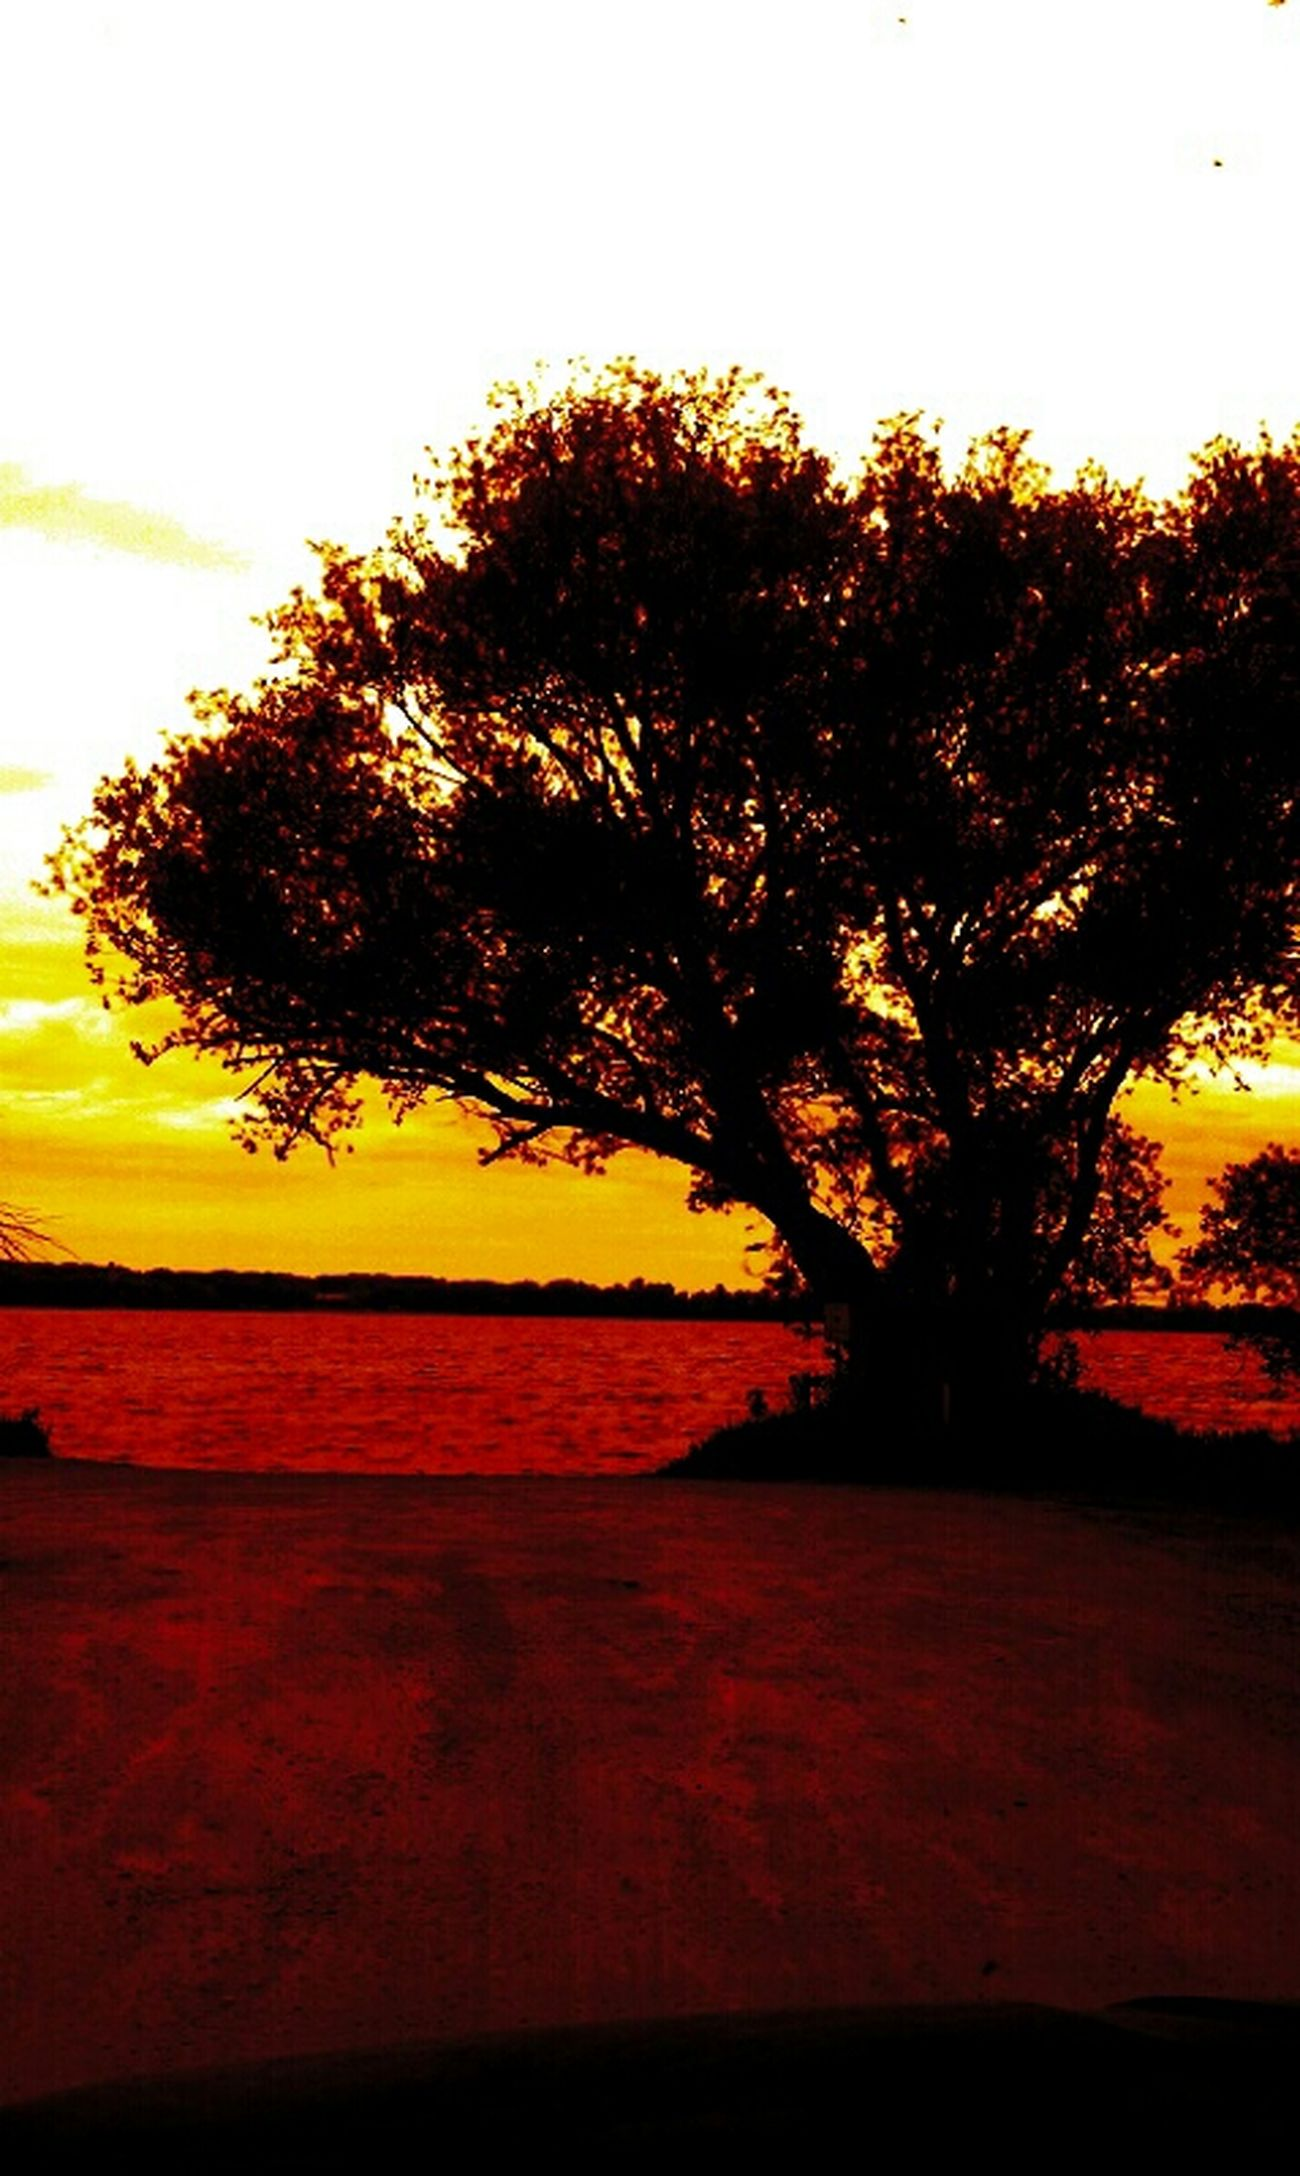 Sunset Nature Beautiful Trees Red Hello World Tree At Dusk